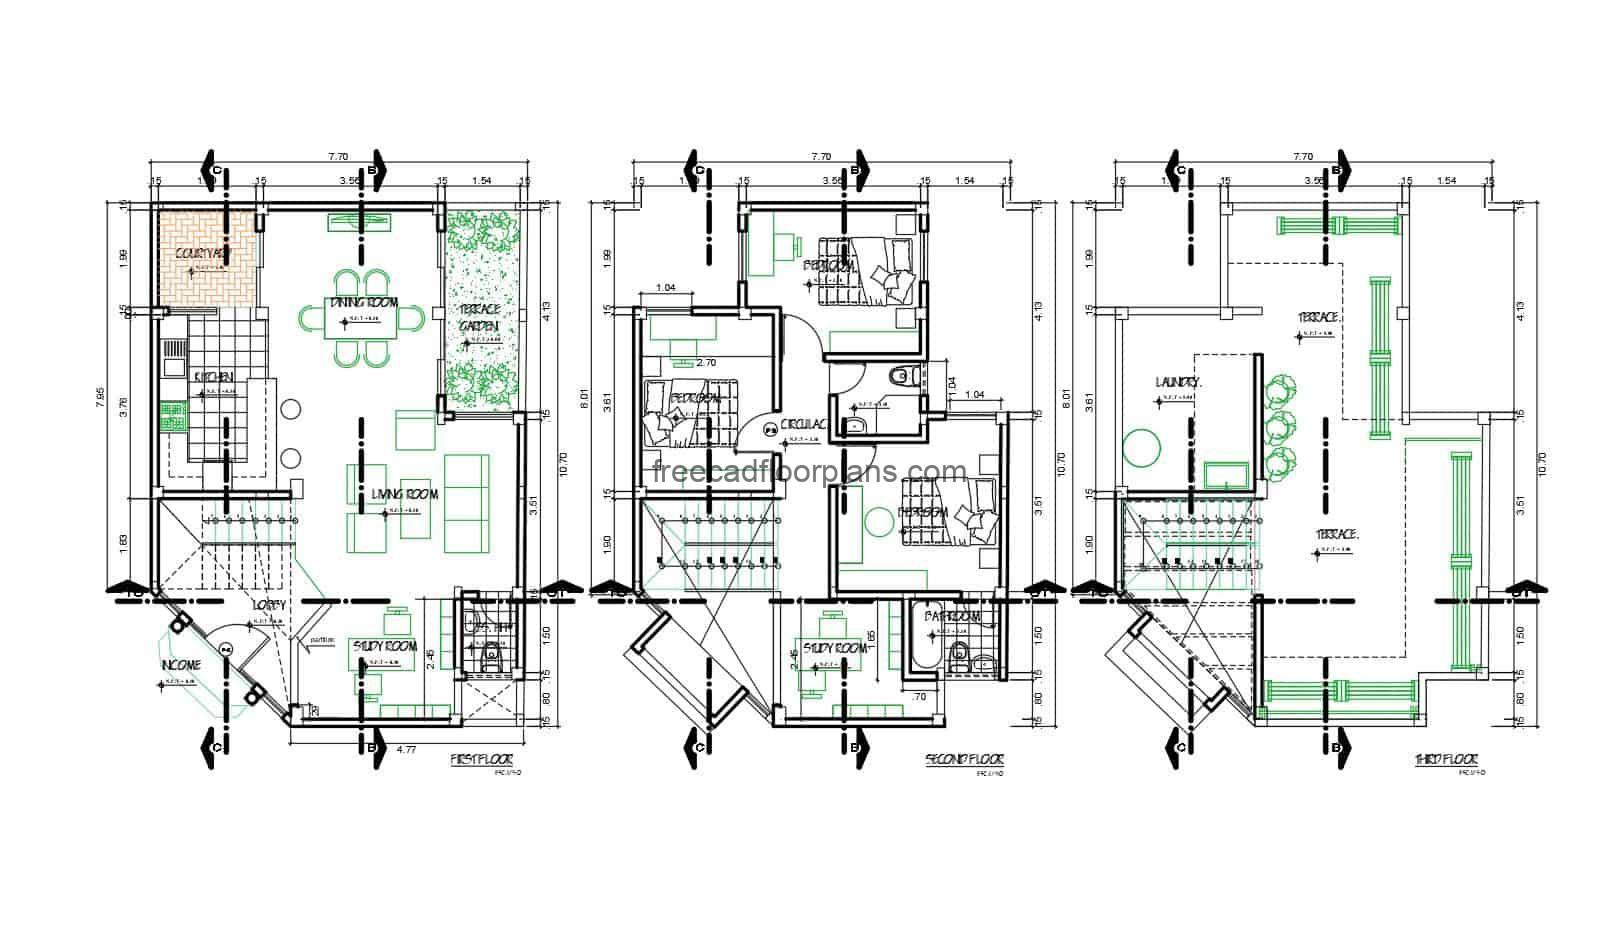 Residence of two levels with roof, modern style floor with defined furniture, architectural plants, dimensioned, elevations and sections in Autocad DWG format for free download.